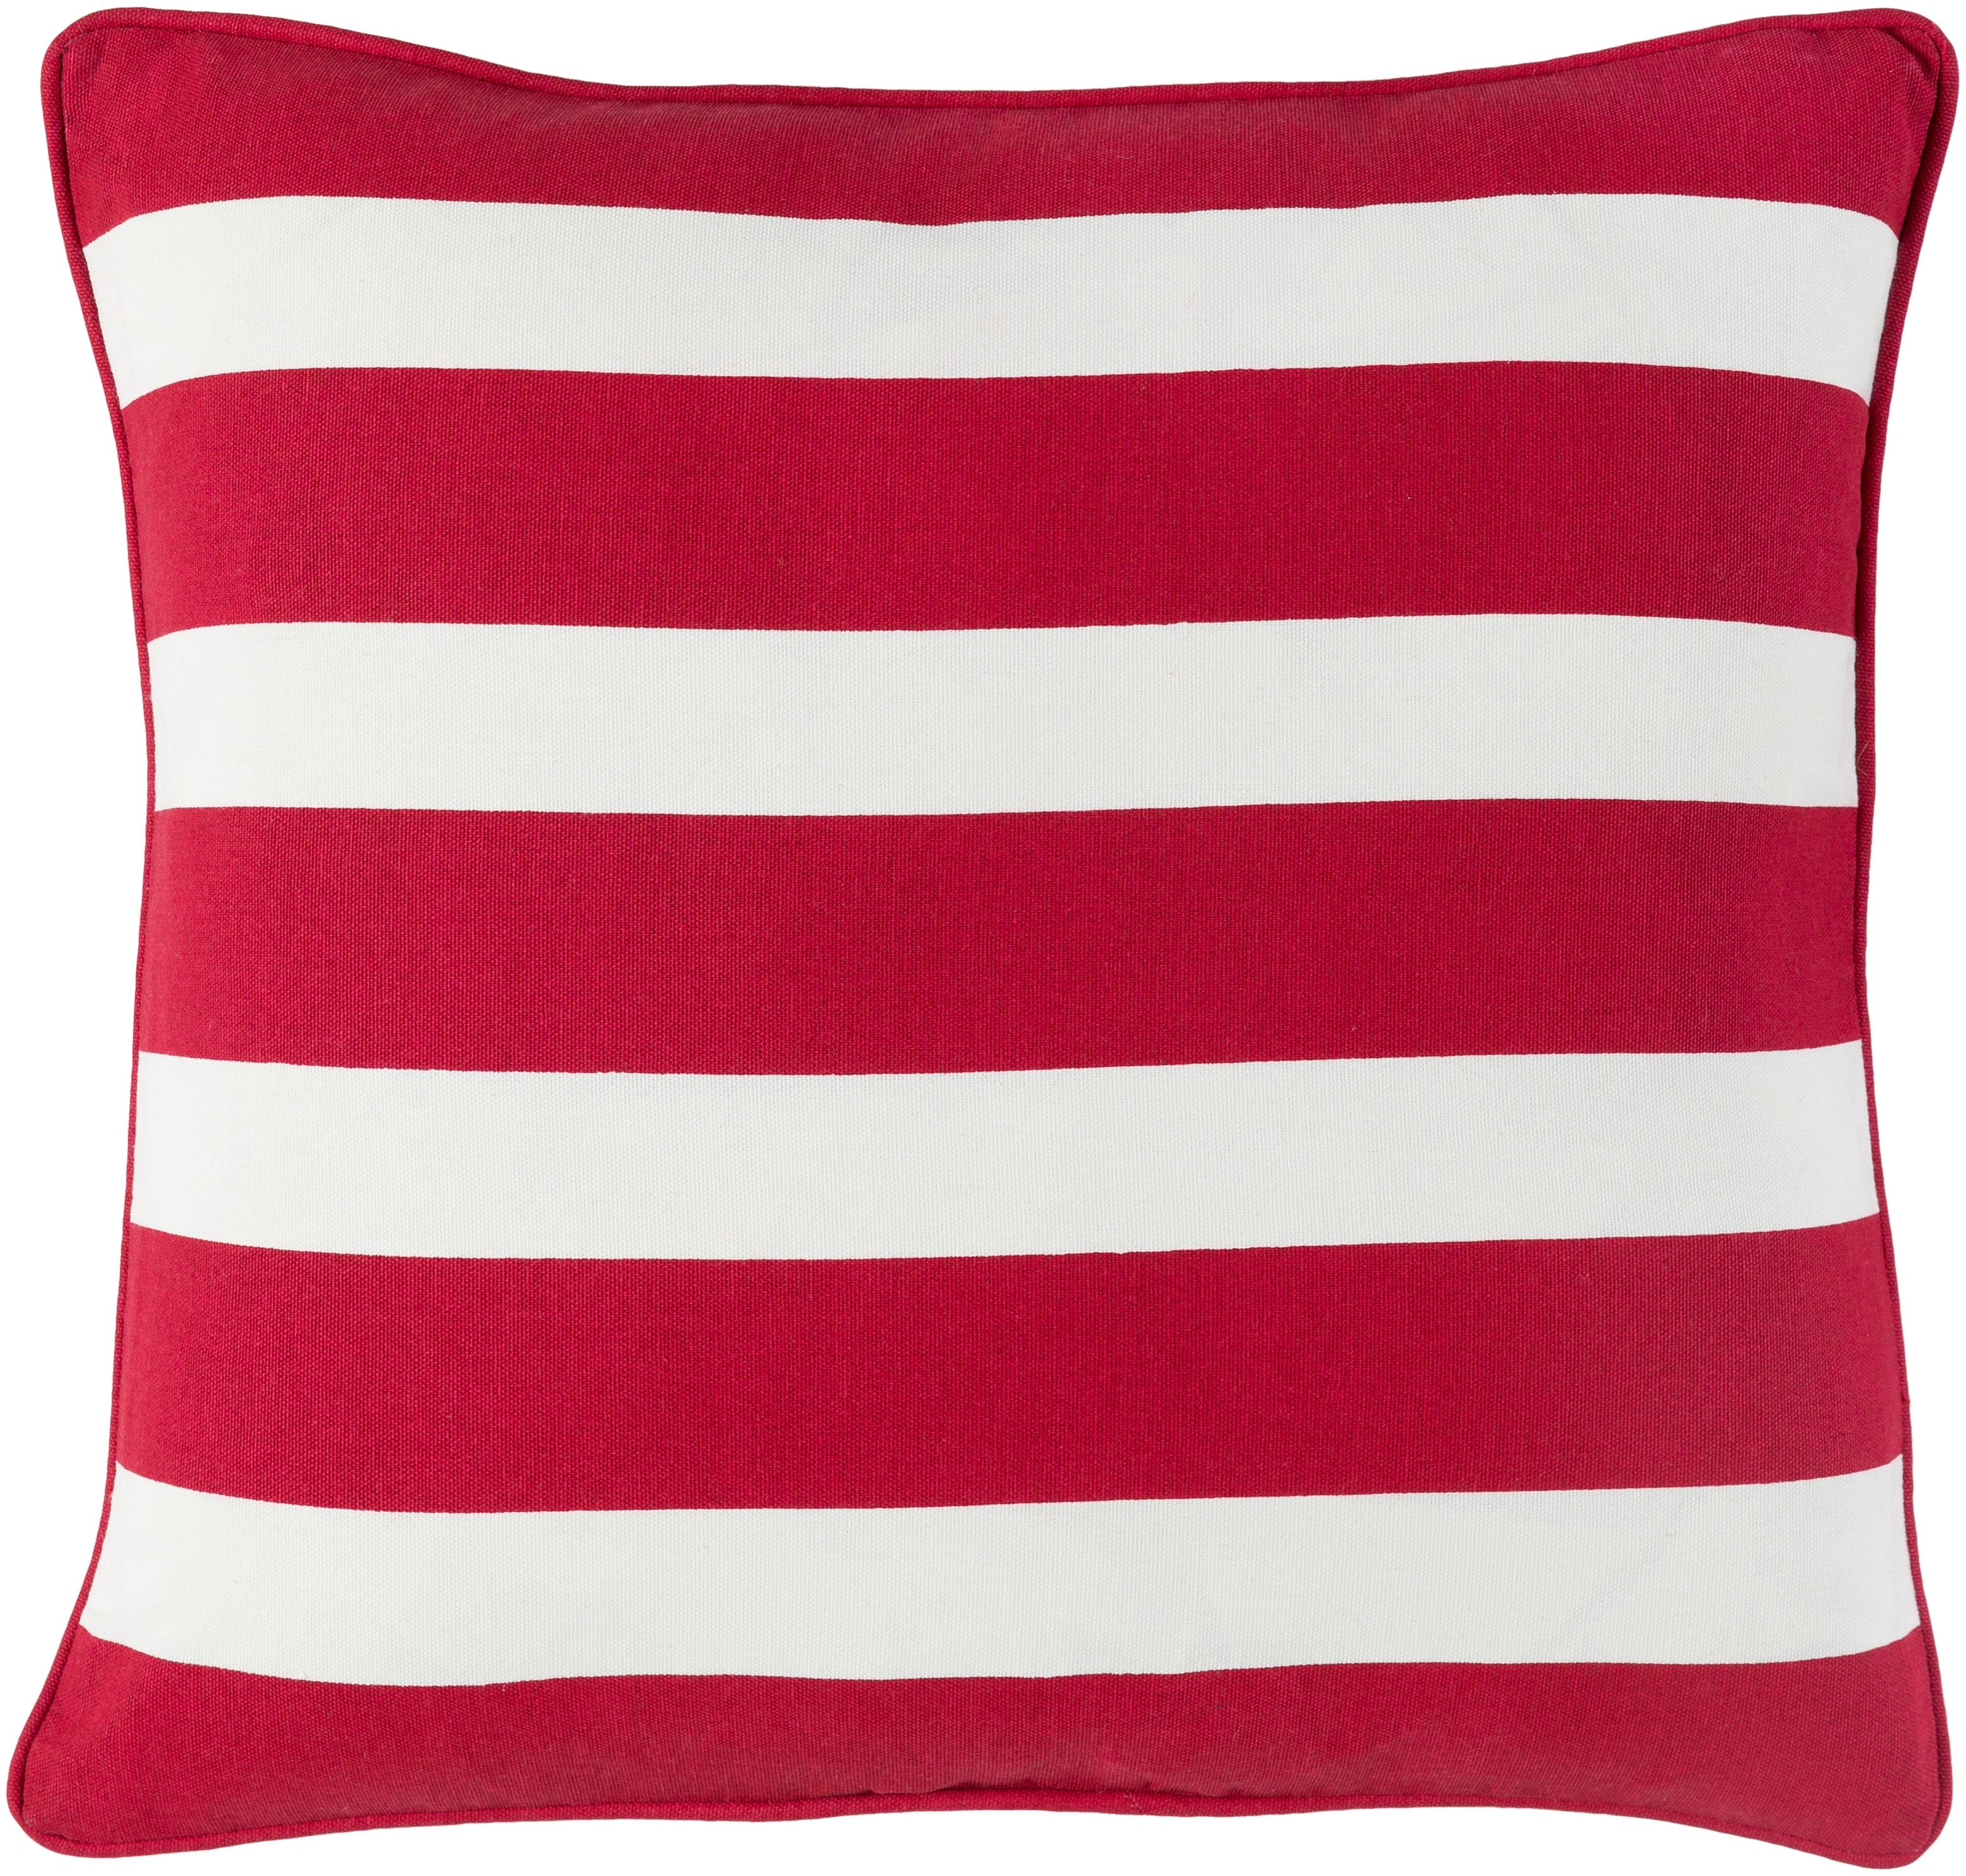 Holiday Throw Pillow Red White Products Pinterest Throw